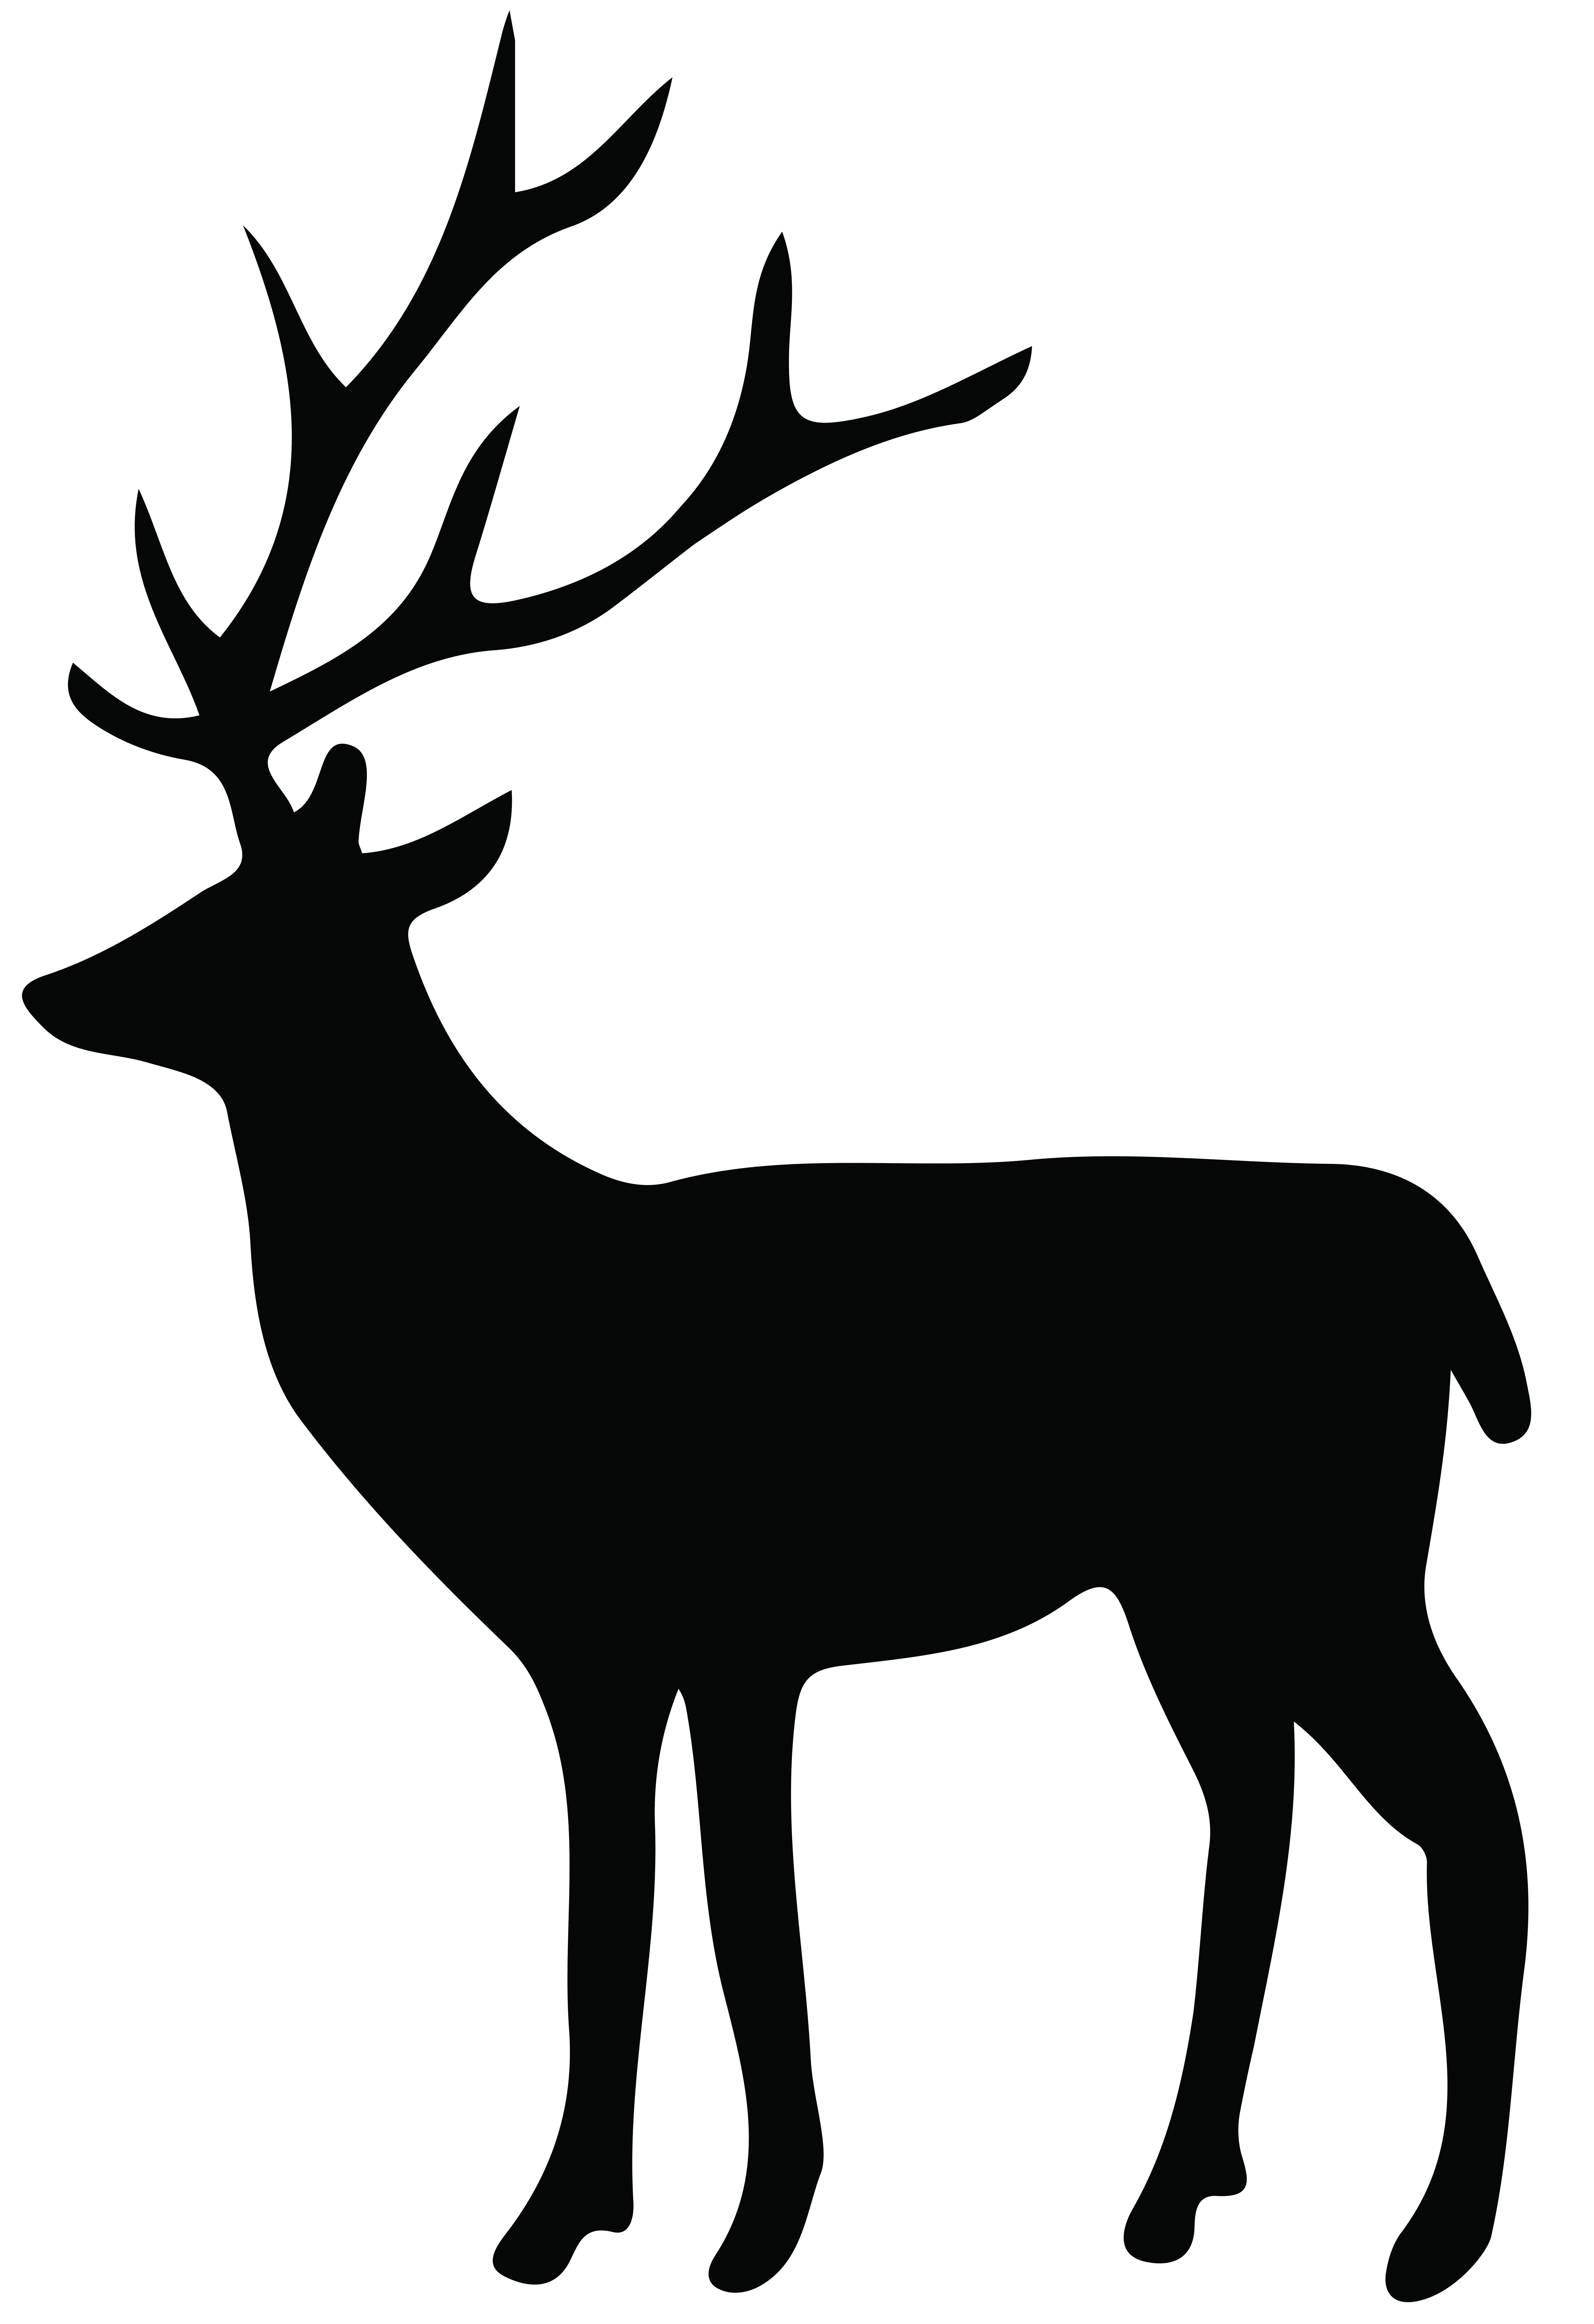 Antlers clipart transparent background. Deer silhouette png clip